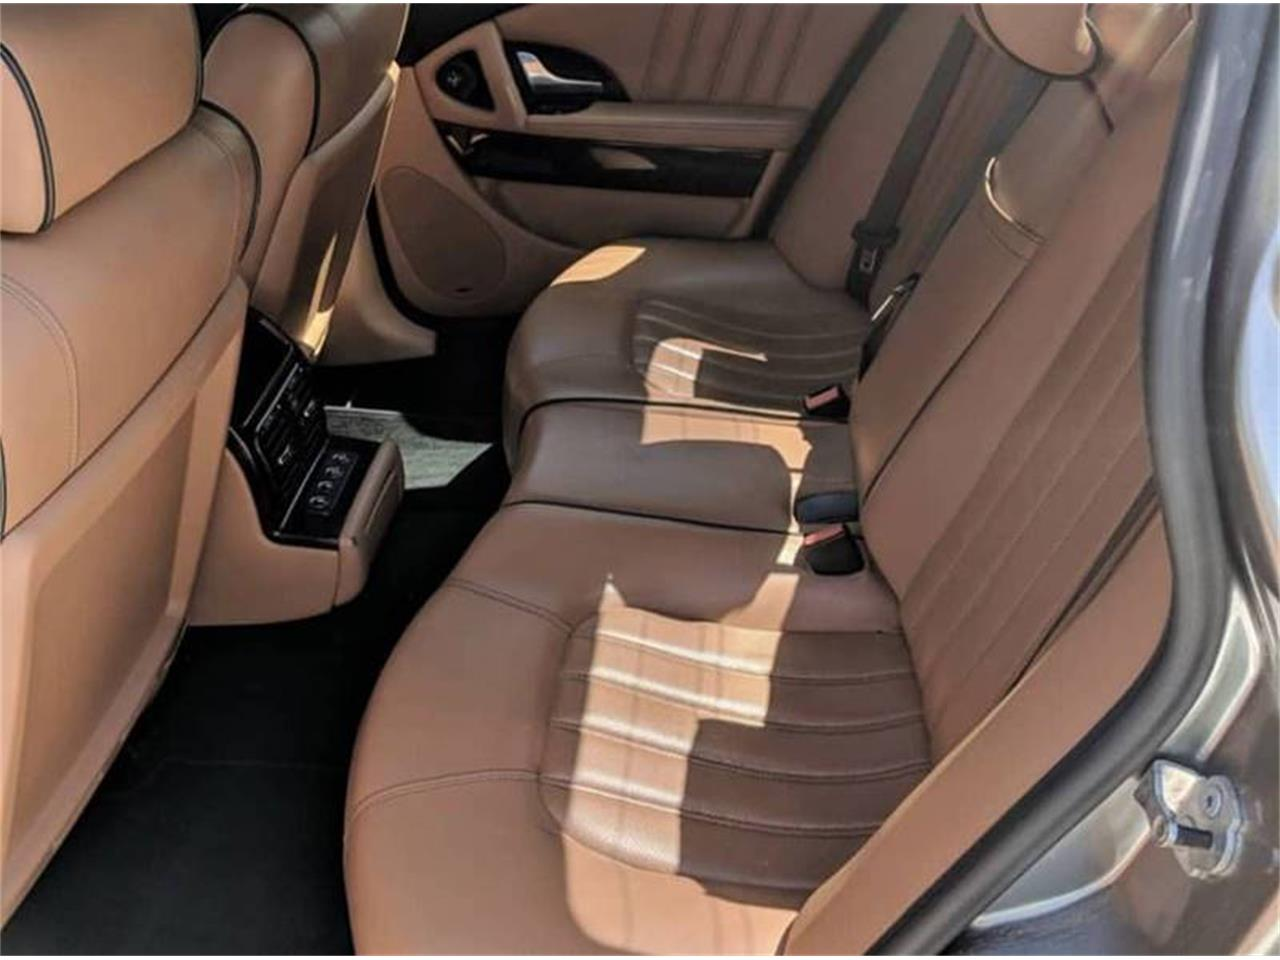 2007 Maserati Quattroporte for sale in Long Island, NY – photo 8